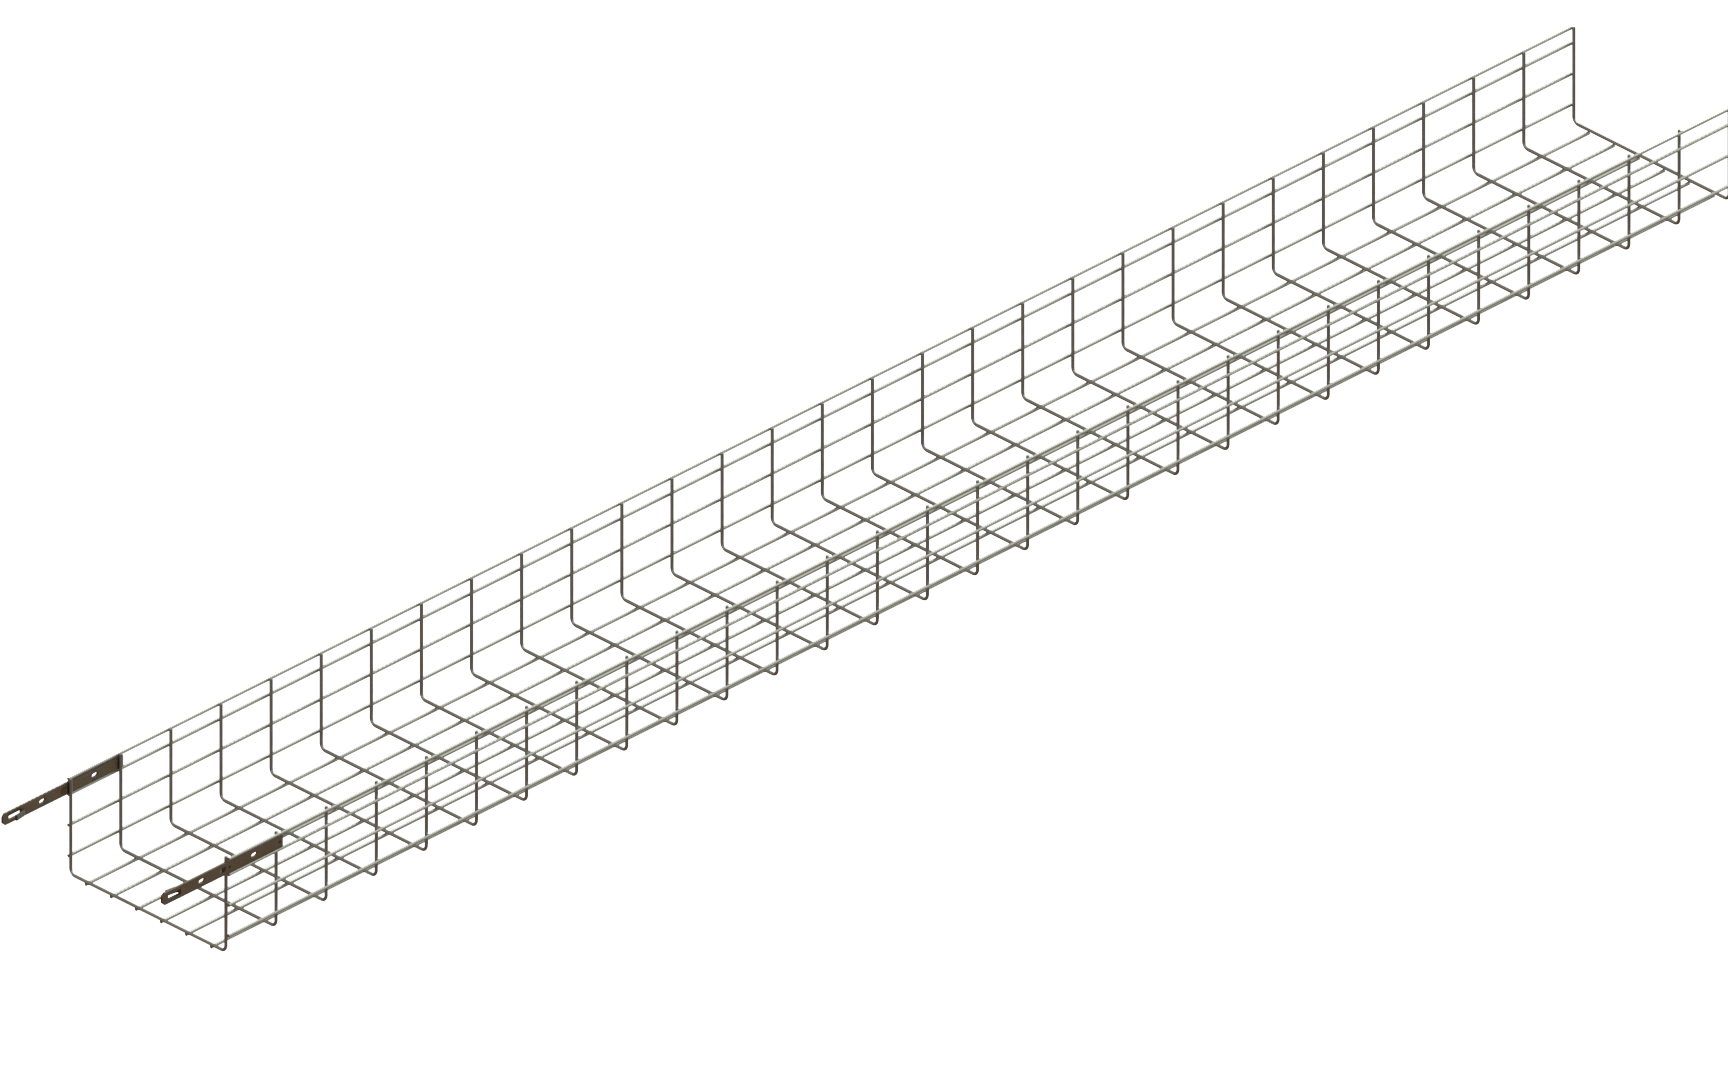 6H Wire Basket - Part Image.png